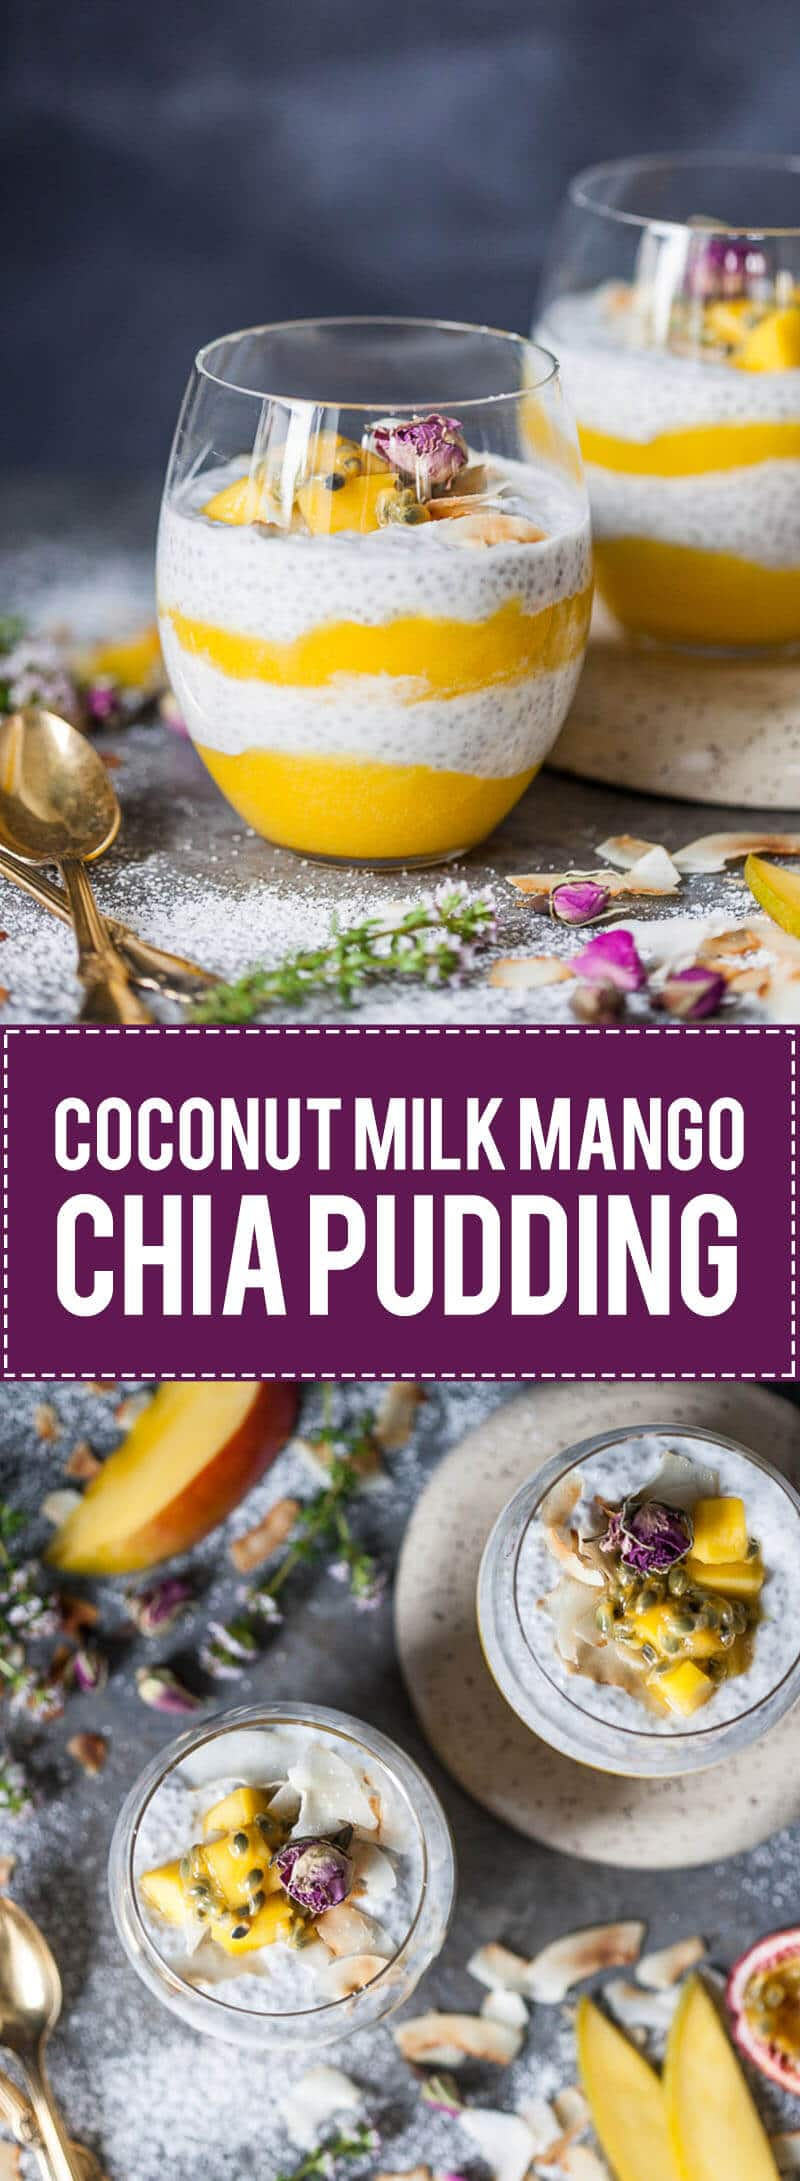 This beautiful Coconut Milk Mango Chia Pudding is refreshing breakfast combo. Vegan and Gluten-Free! | www.vibrantplate.com